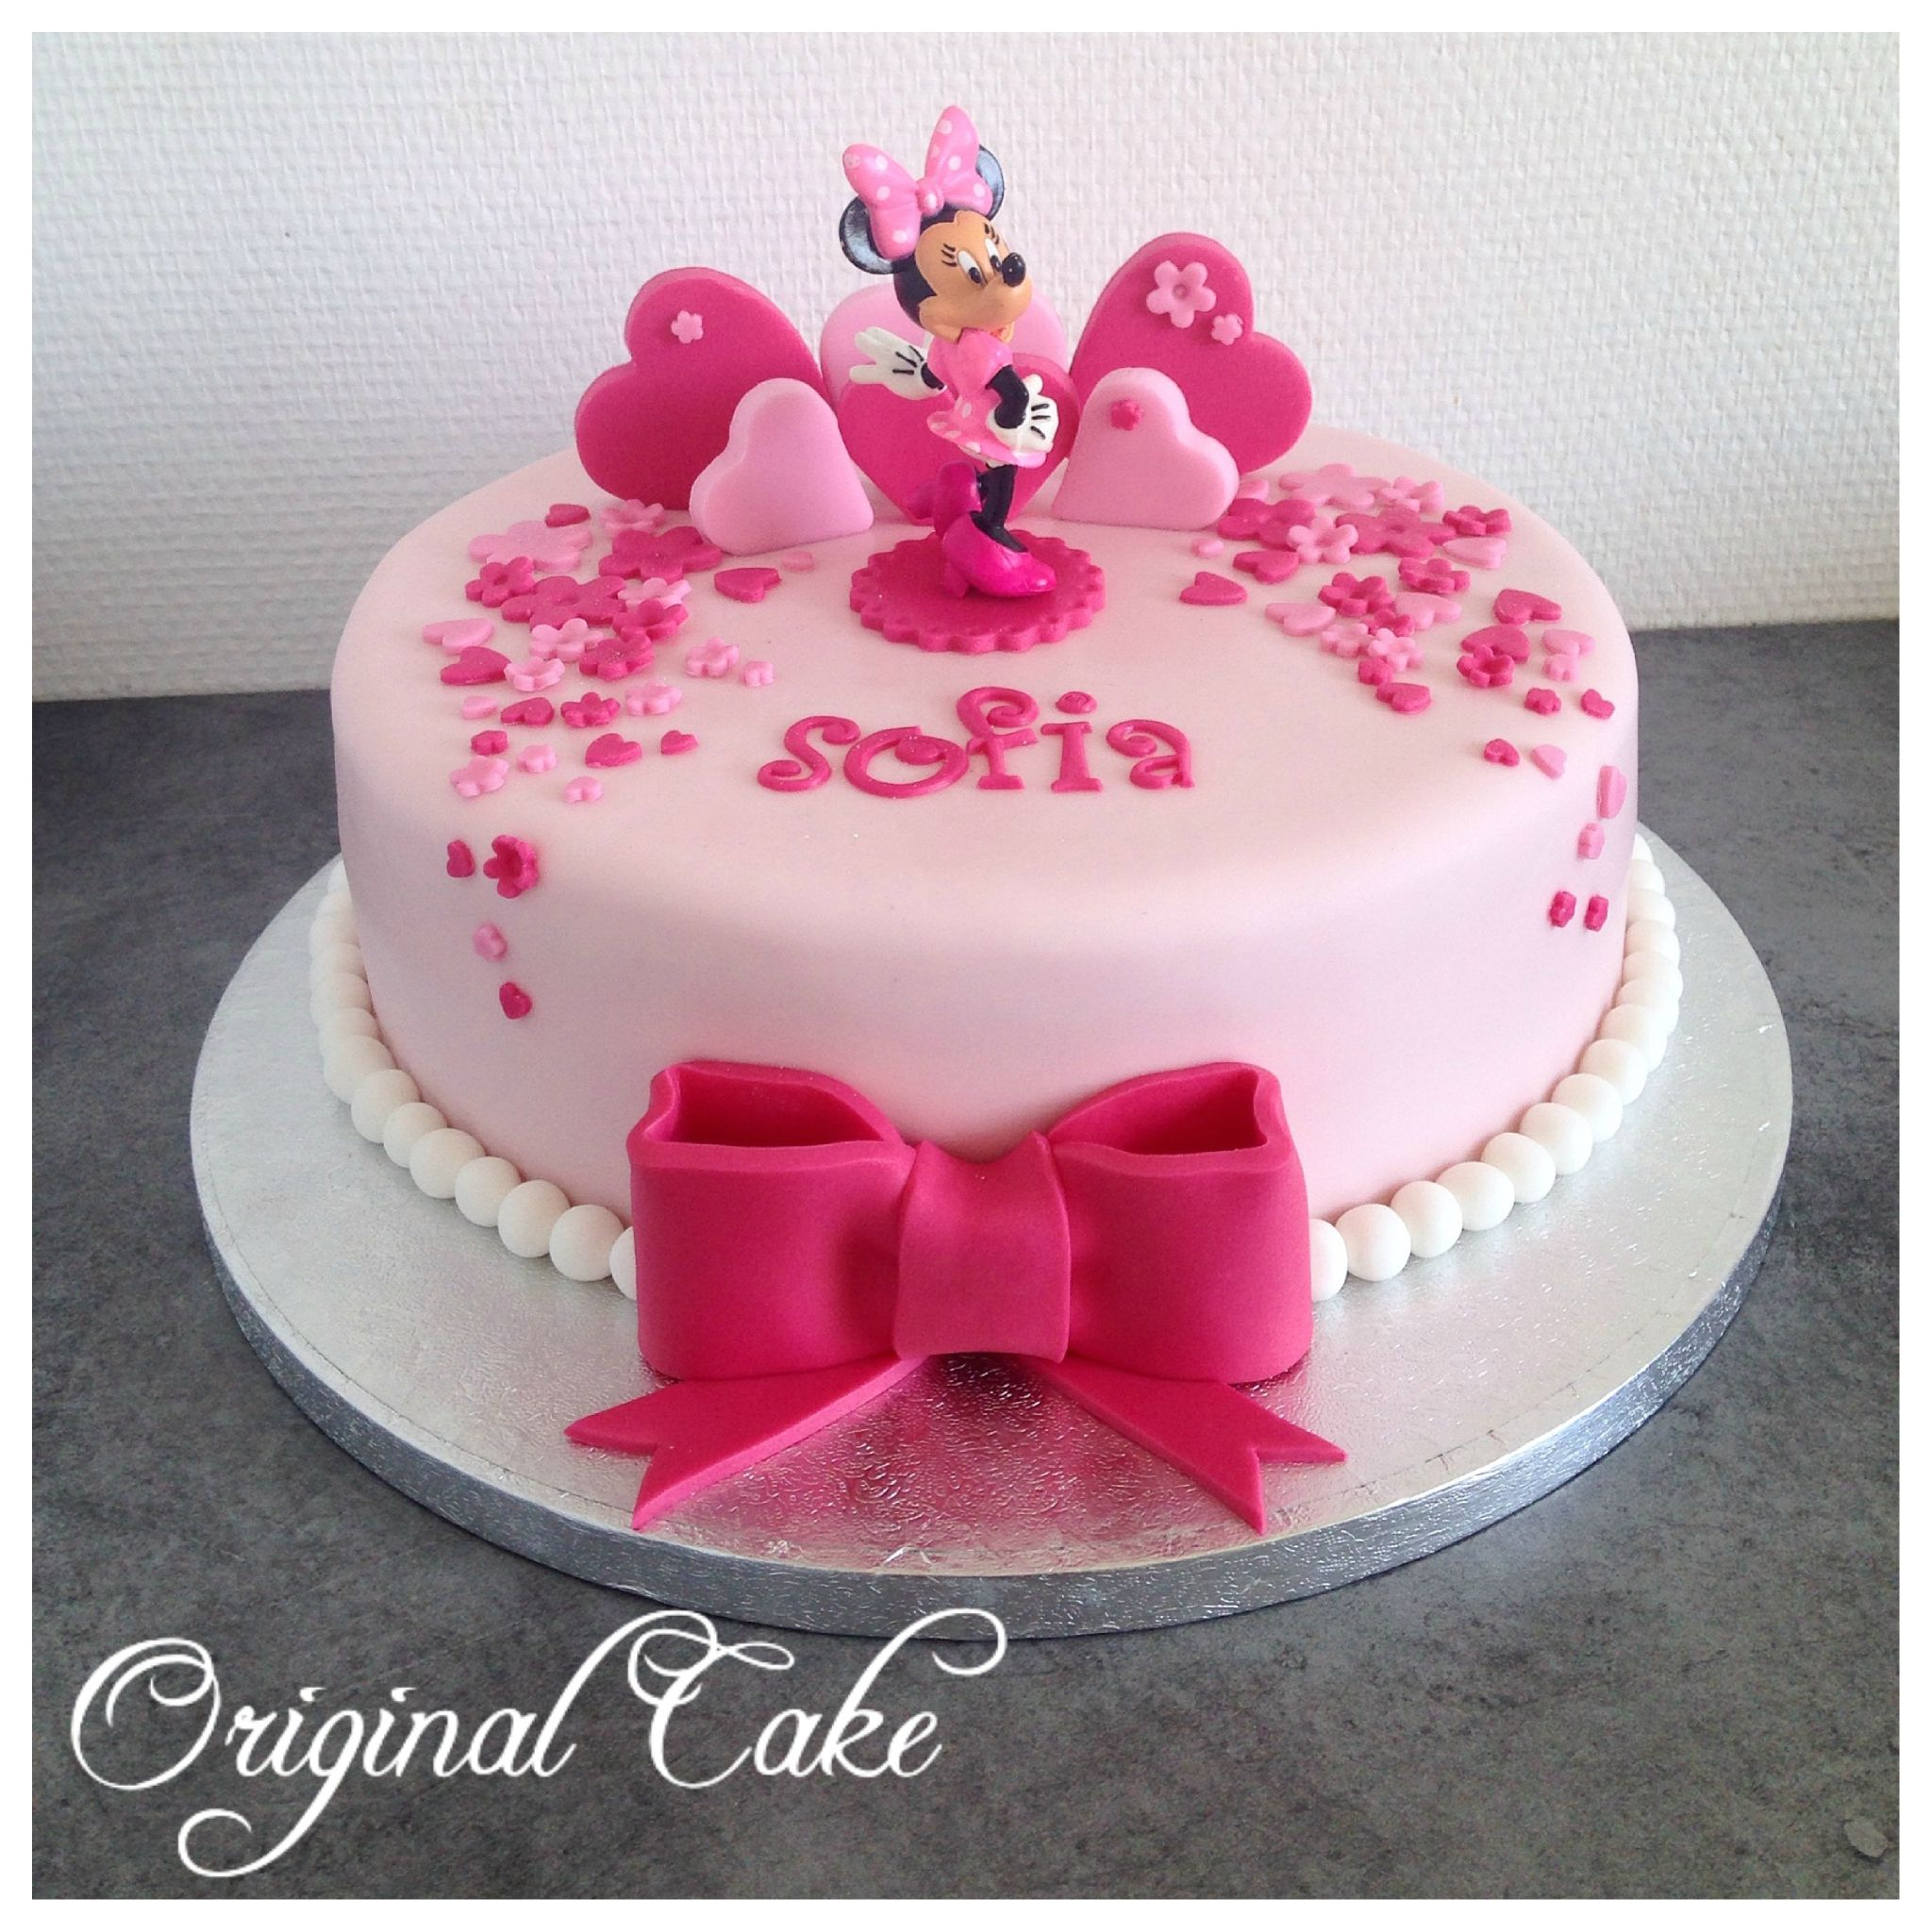 Decoration Gateau Originale Gâteau Minnie Original Cake Fête Thème Minnie Mouse